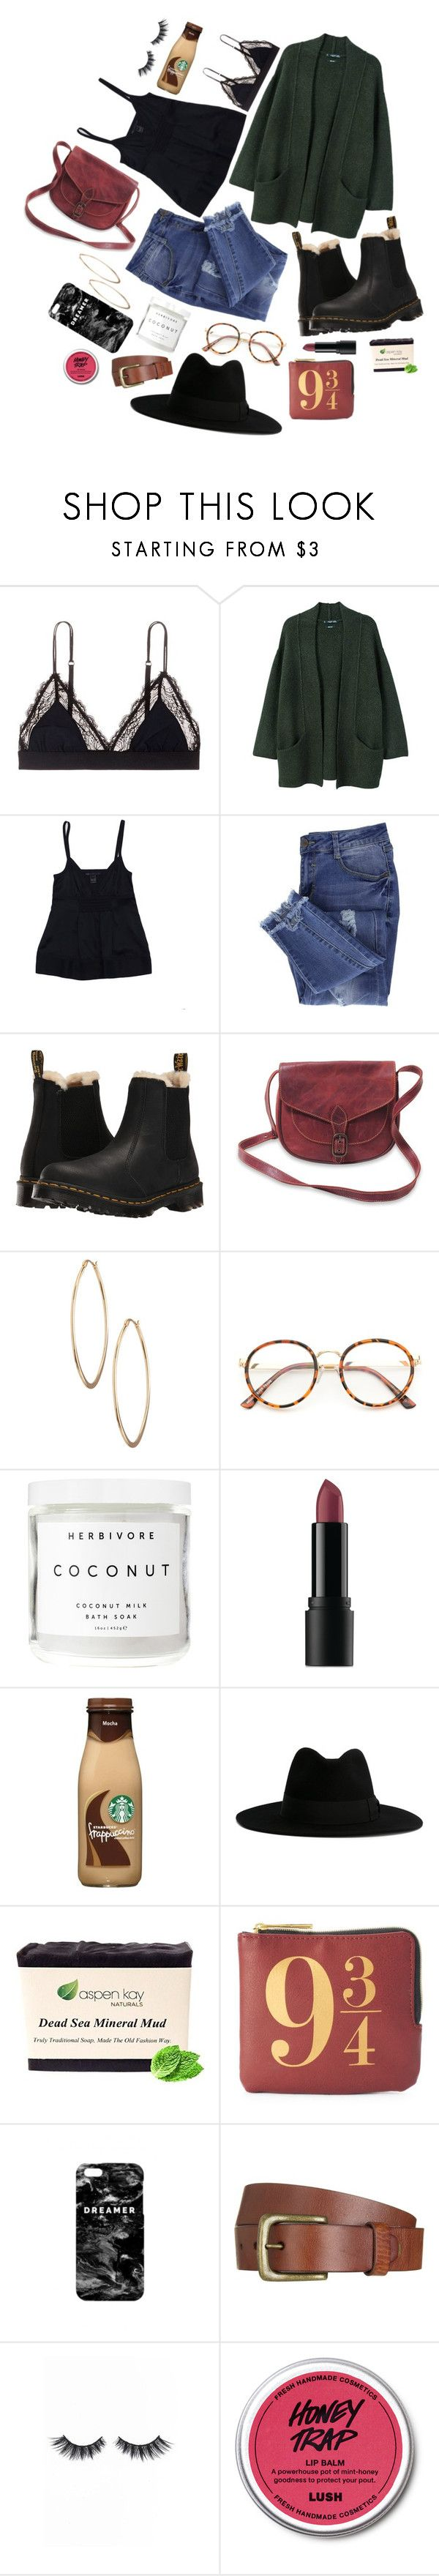 """""""Heyo"""" by maciestockman ❤ liked on Polyvore featuring LoveStories, MANGO, Marc by Marc Jacobs, Essie, Dr. Martens, Lydell NYC, Herbivore, Bare Escentuals, Yves Saint Laurent and Mr. Gugu & Miss Go"""